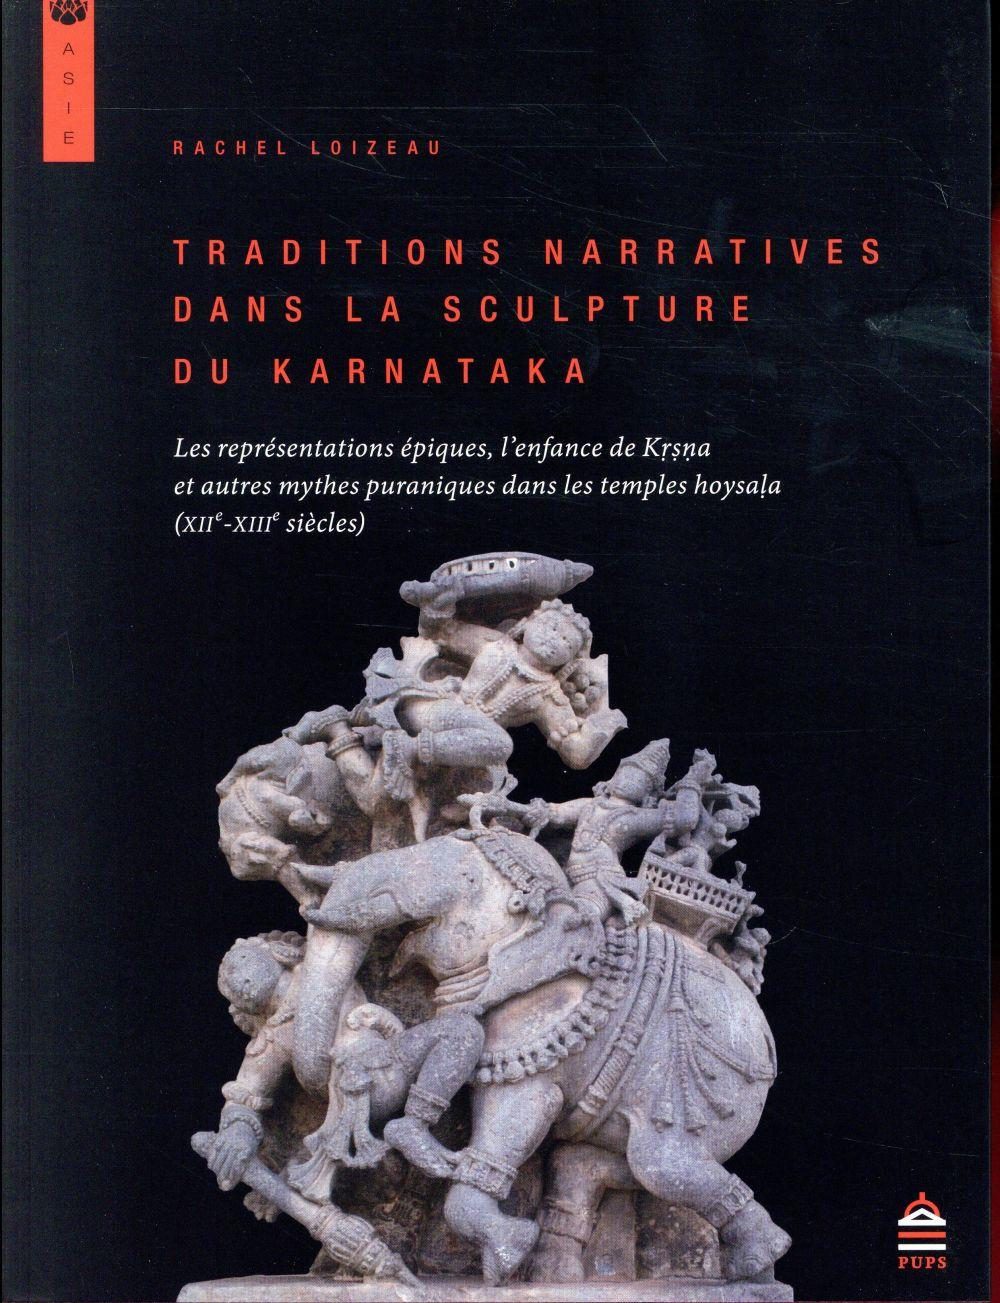 traditions narratives dans la sculpture du Karnataka - Loizeau, Rachel